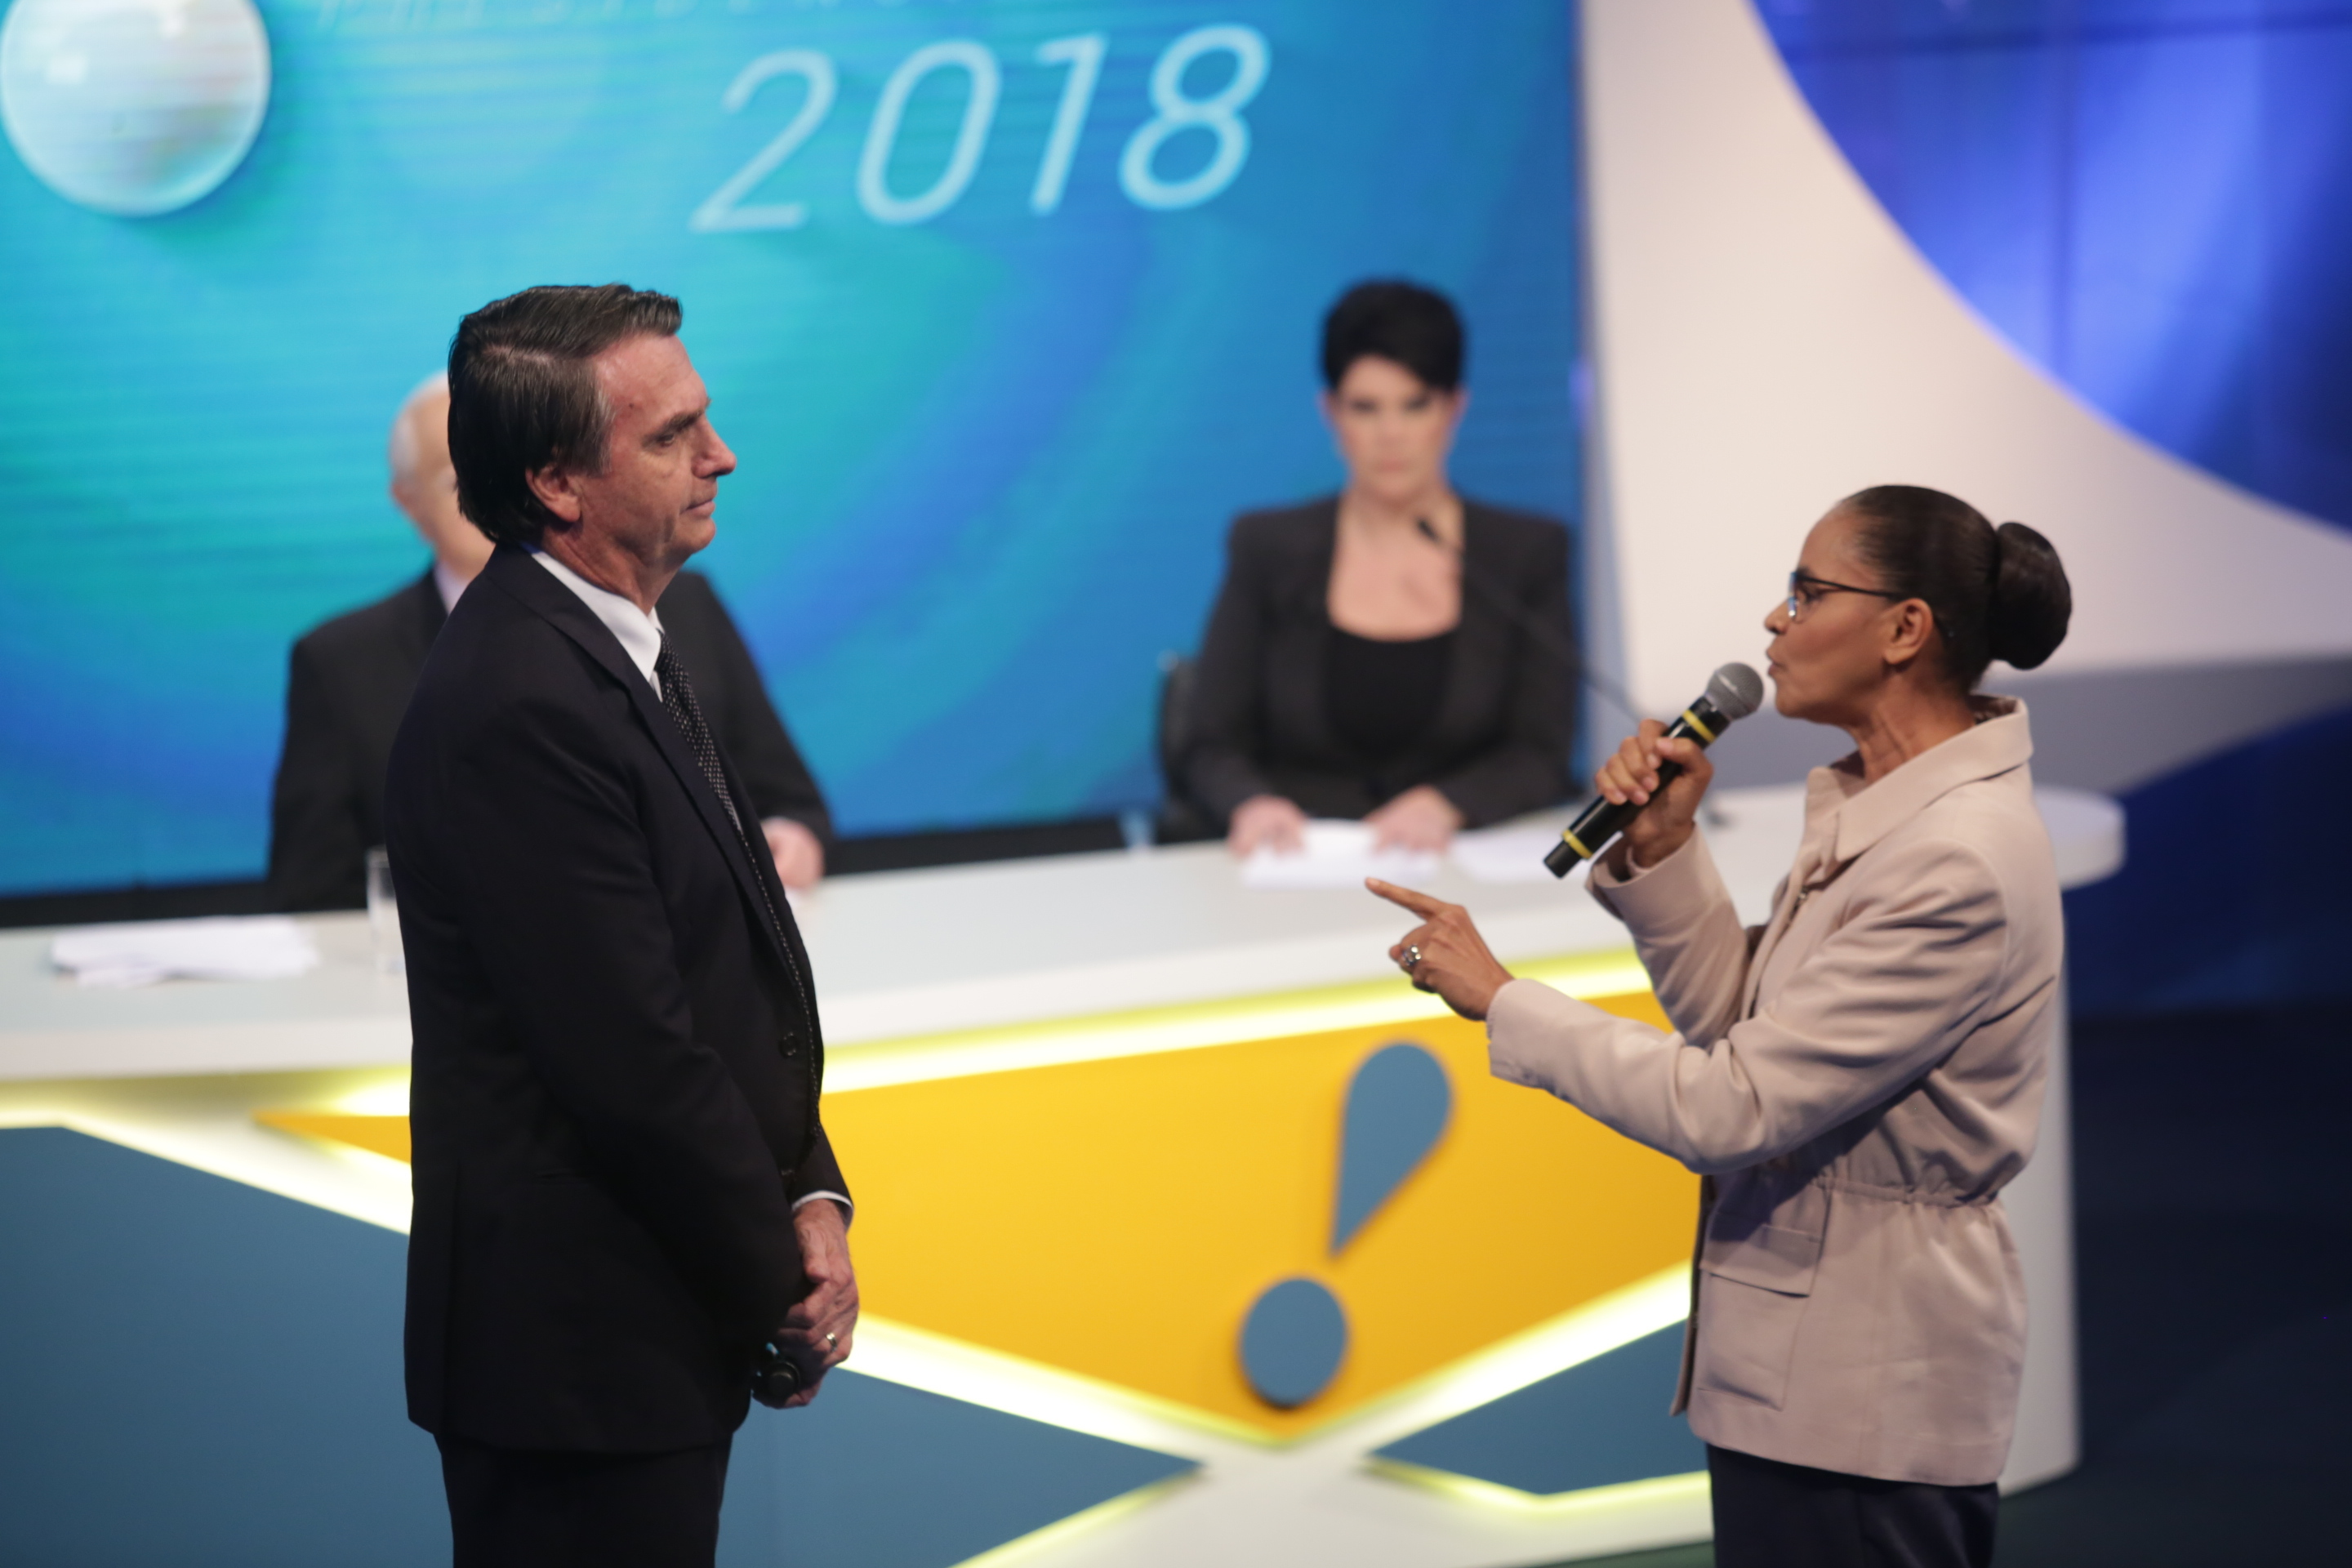 Brazil electoral court to rule Friday on presidential candidacy